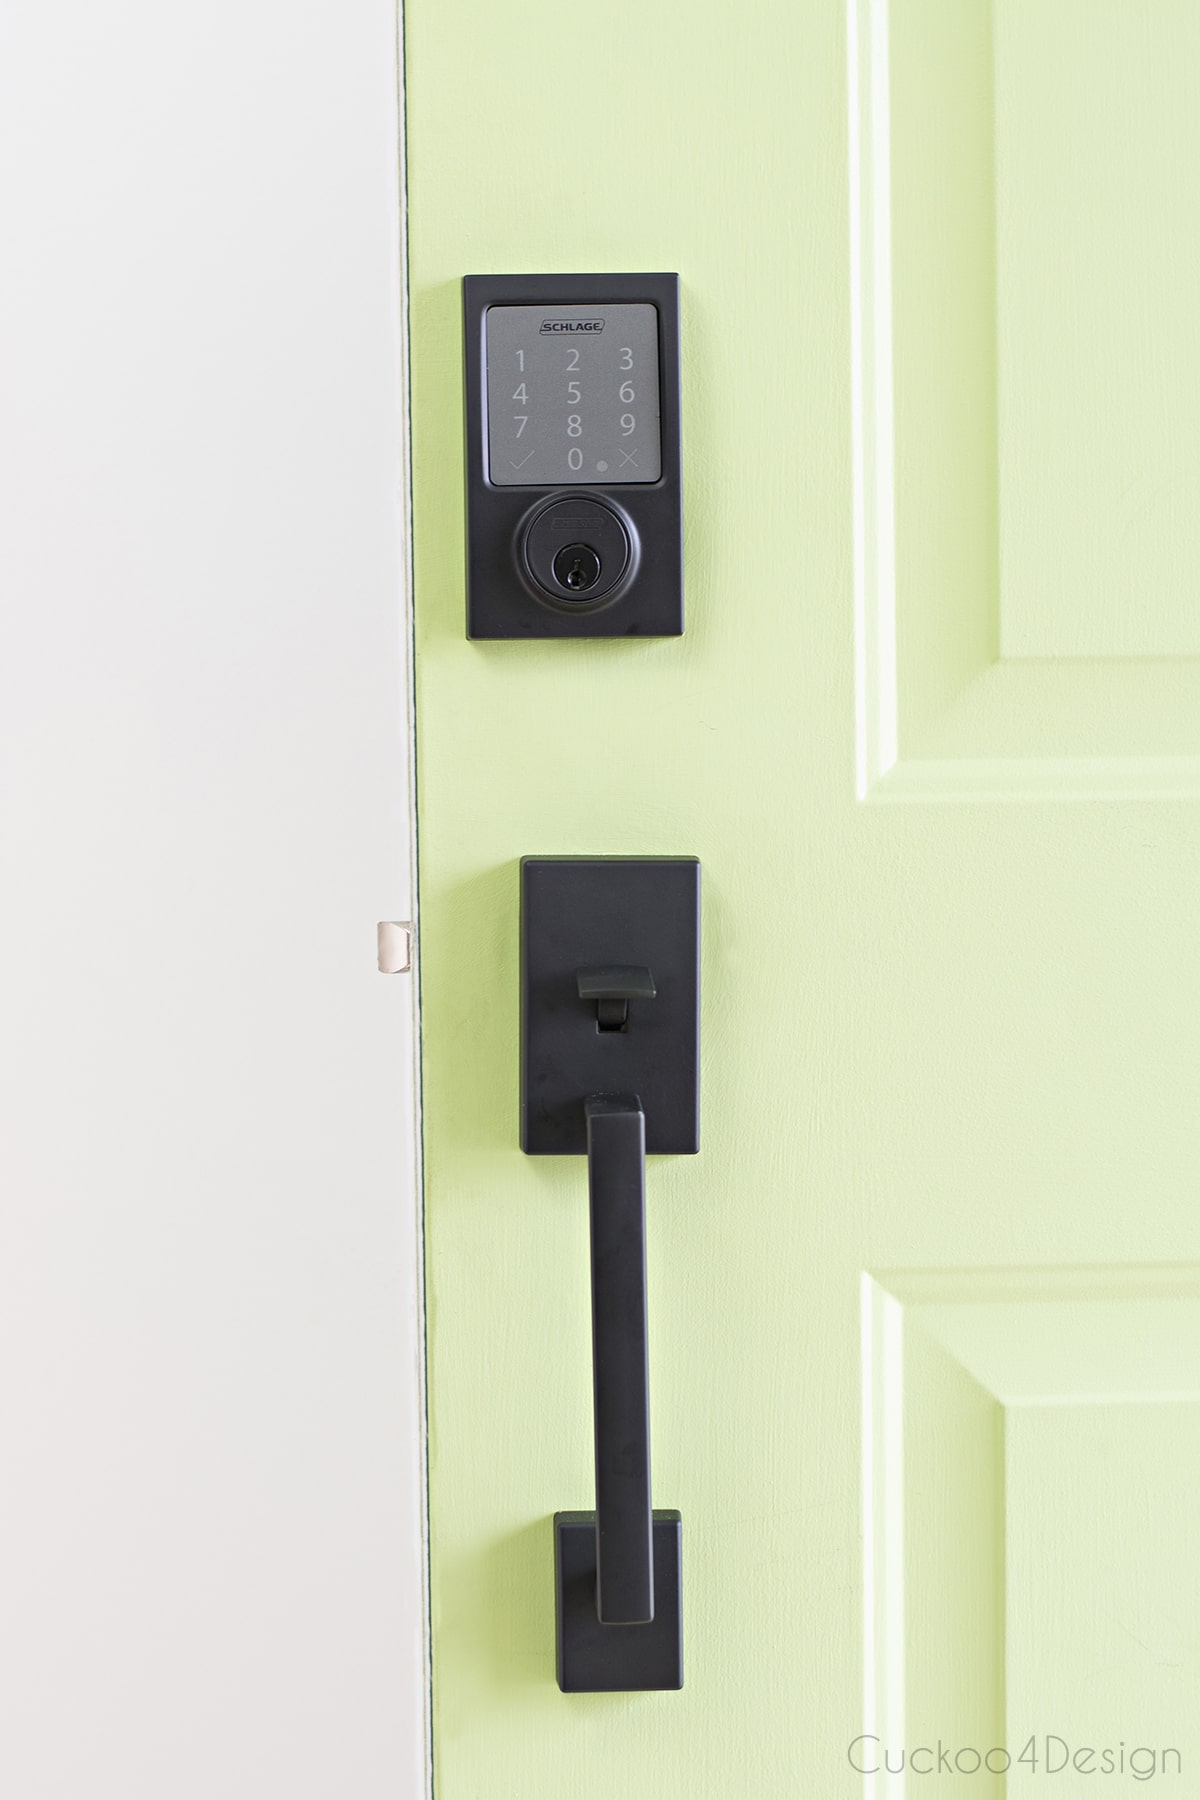 3 reasons why we love our Schlage Sense Smart Deadbolt | schlage keyless lock | schlage keyless deadbolt | door bolt lock | push button door lock | best door locks | electric door opener | most secure door locks | wifi controlled door lock | homekit deadbolt | wireless deadbolt lock | smart lock | keypad door lock | electronic door locks | keyless entry